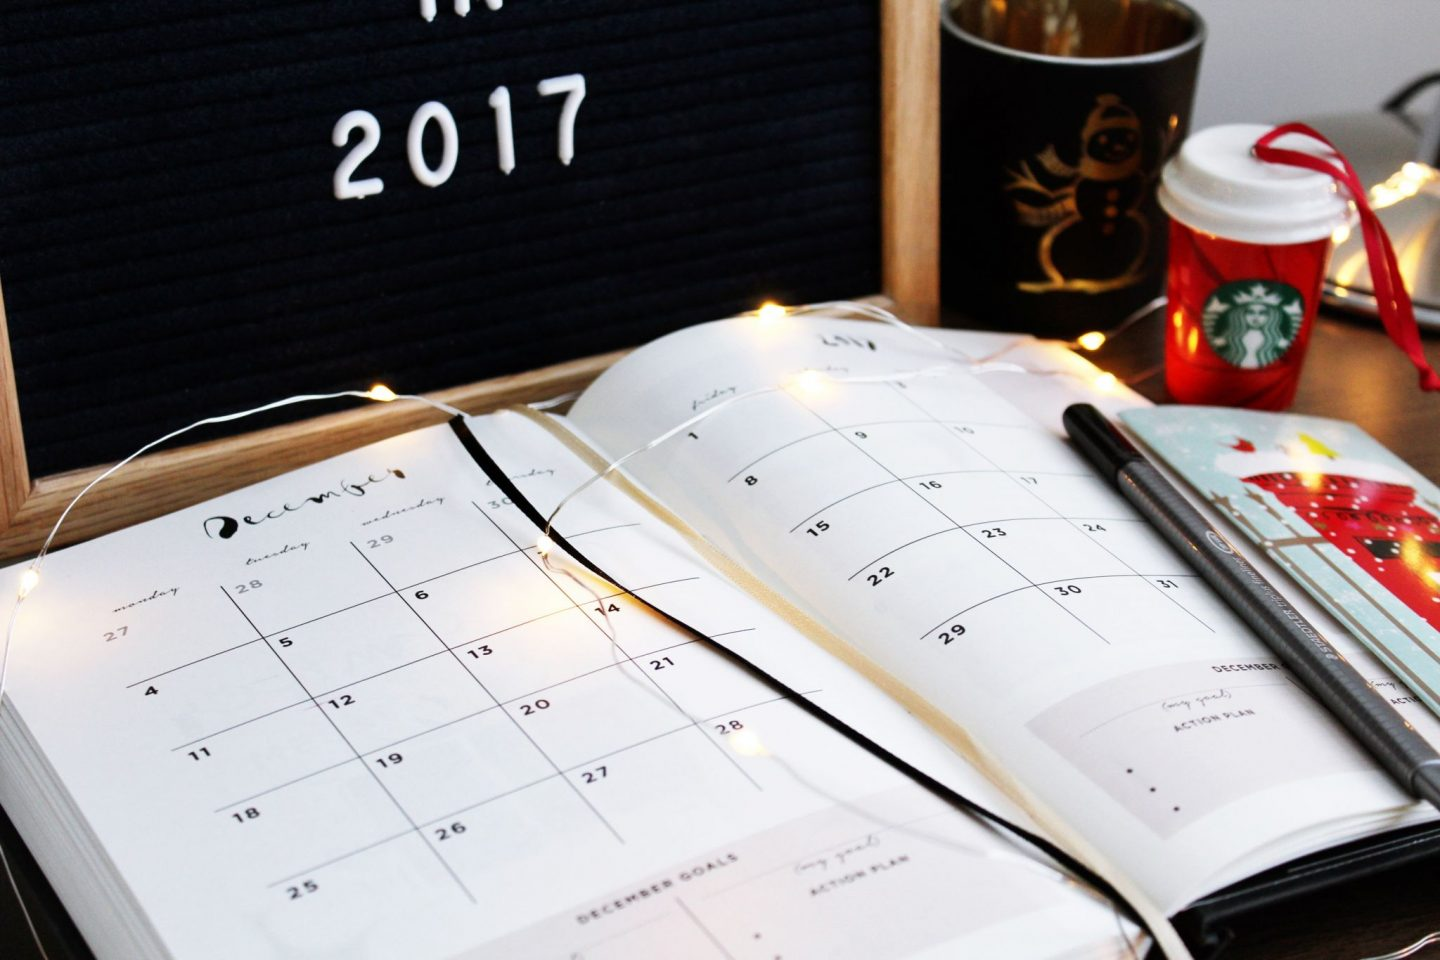 Planning, 2017, 17 things to do in 2017, how to plan your month, how to be productive